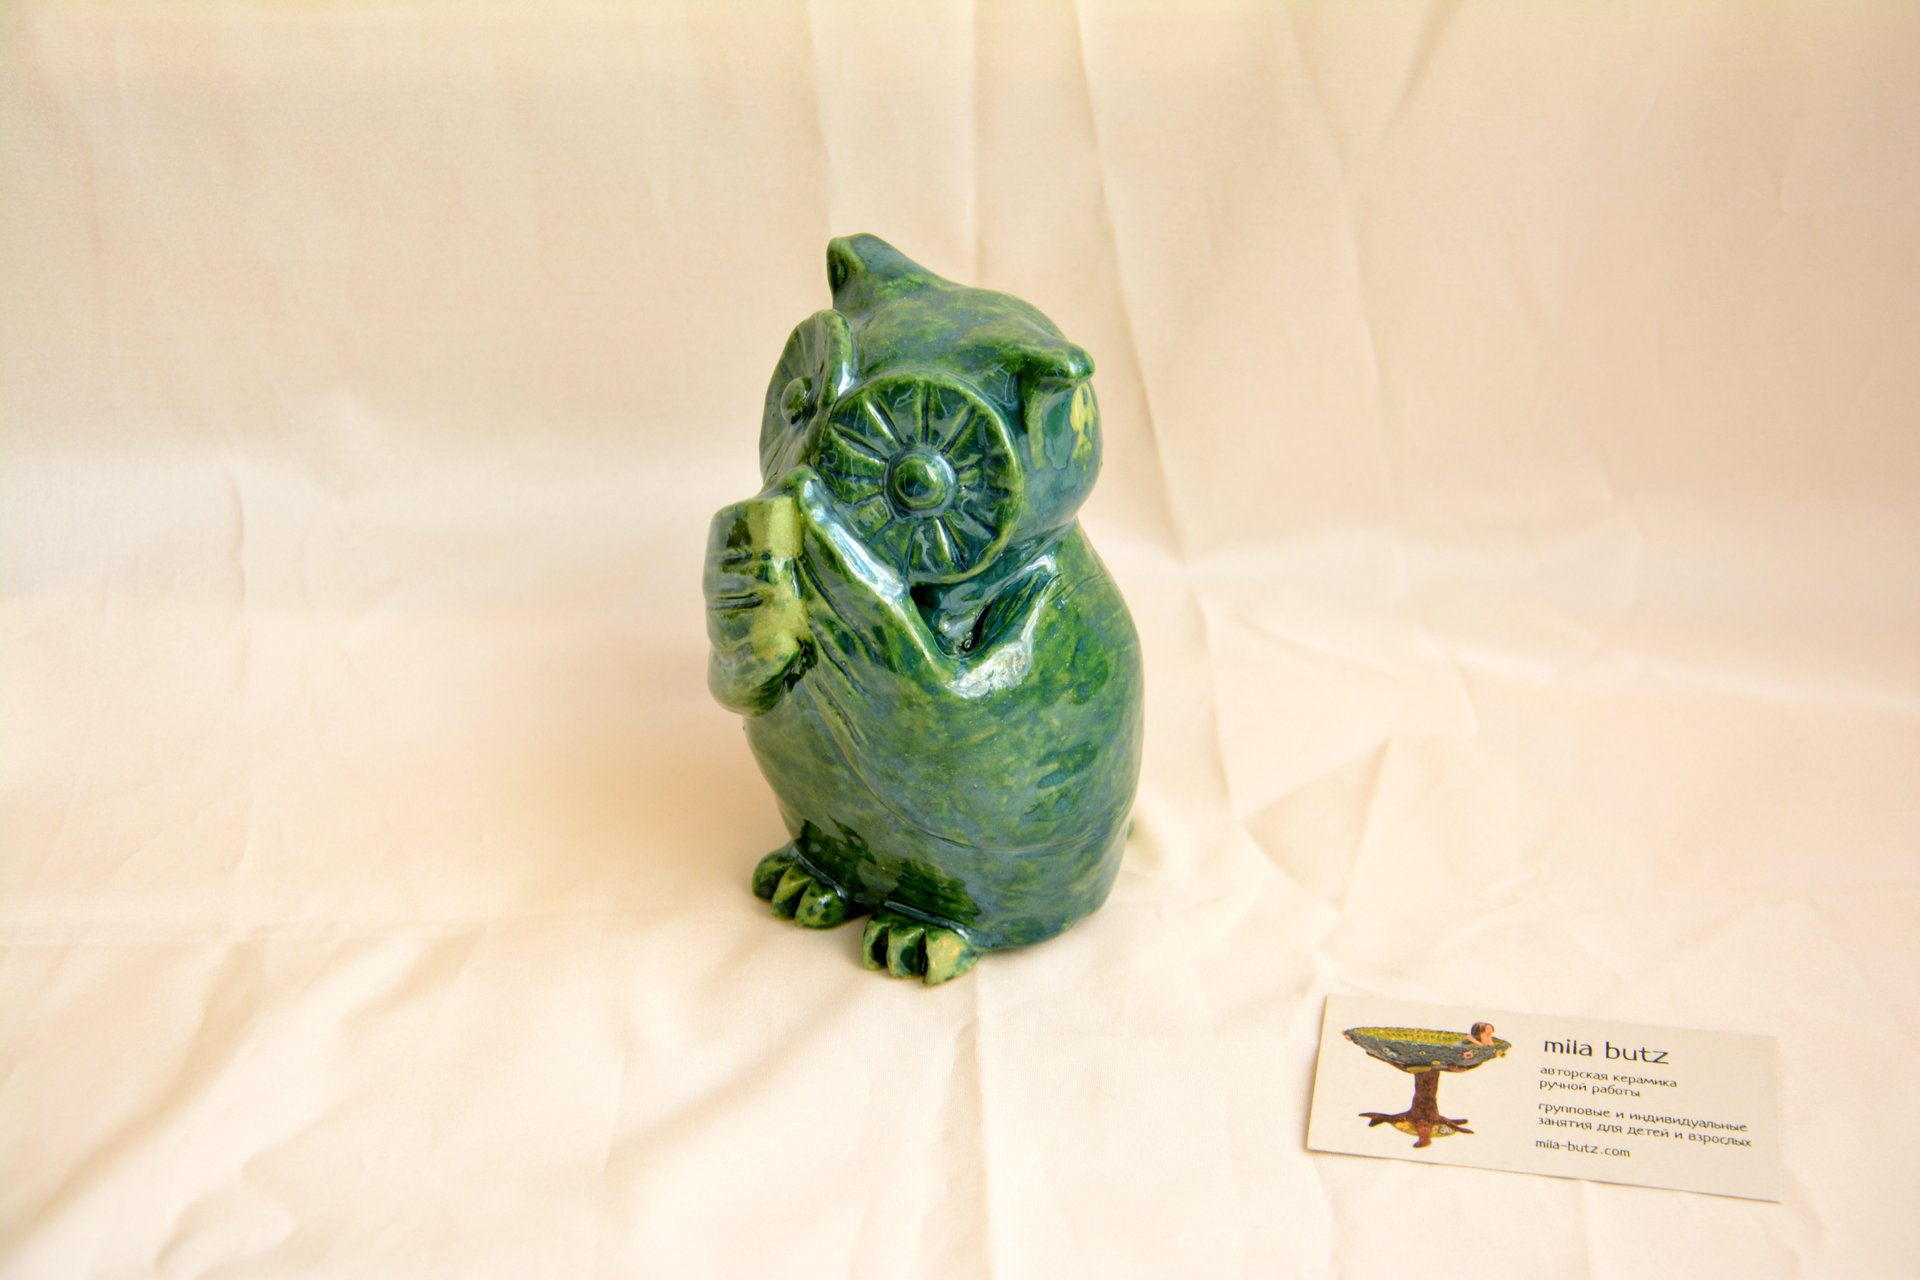 Owl «I will not say anything» - Animals and birds, height - 14cm, photo 3 of 4.